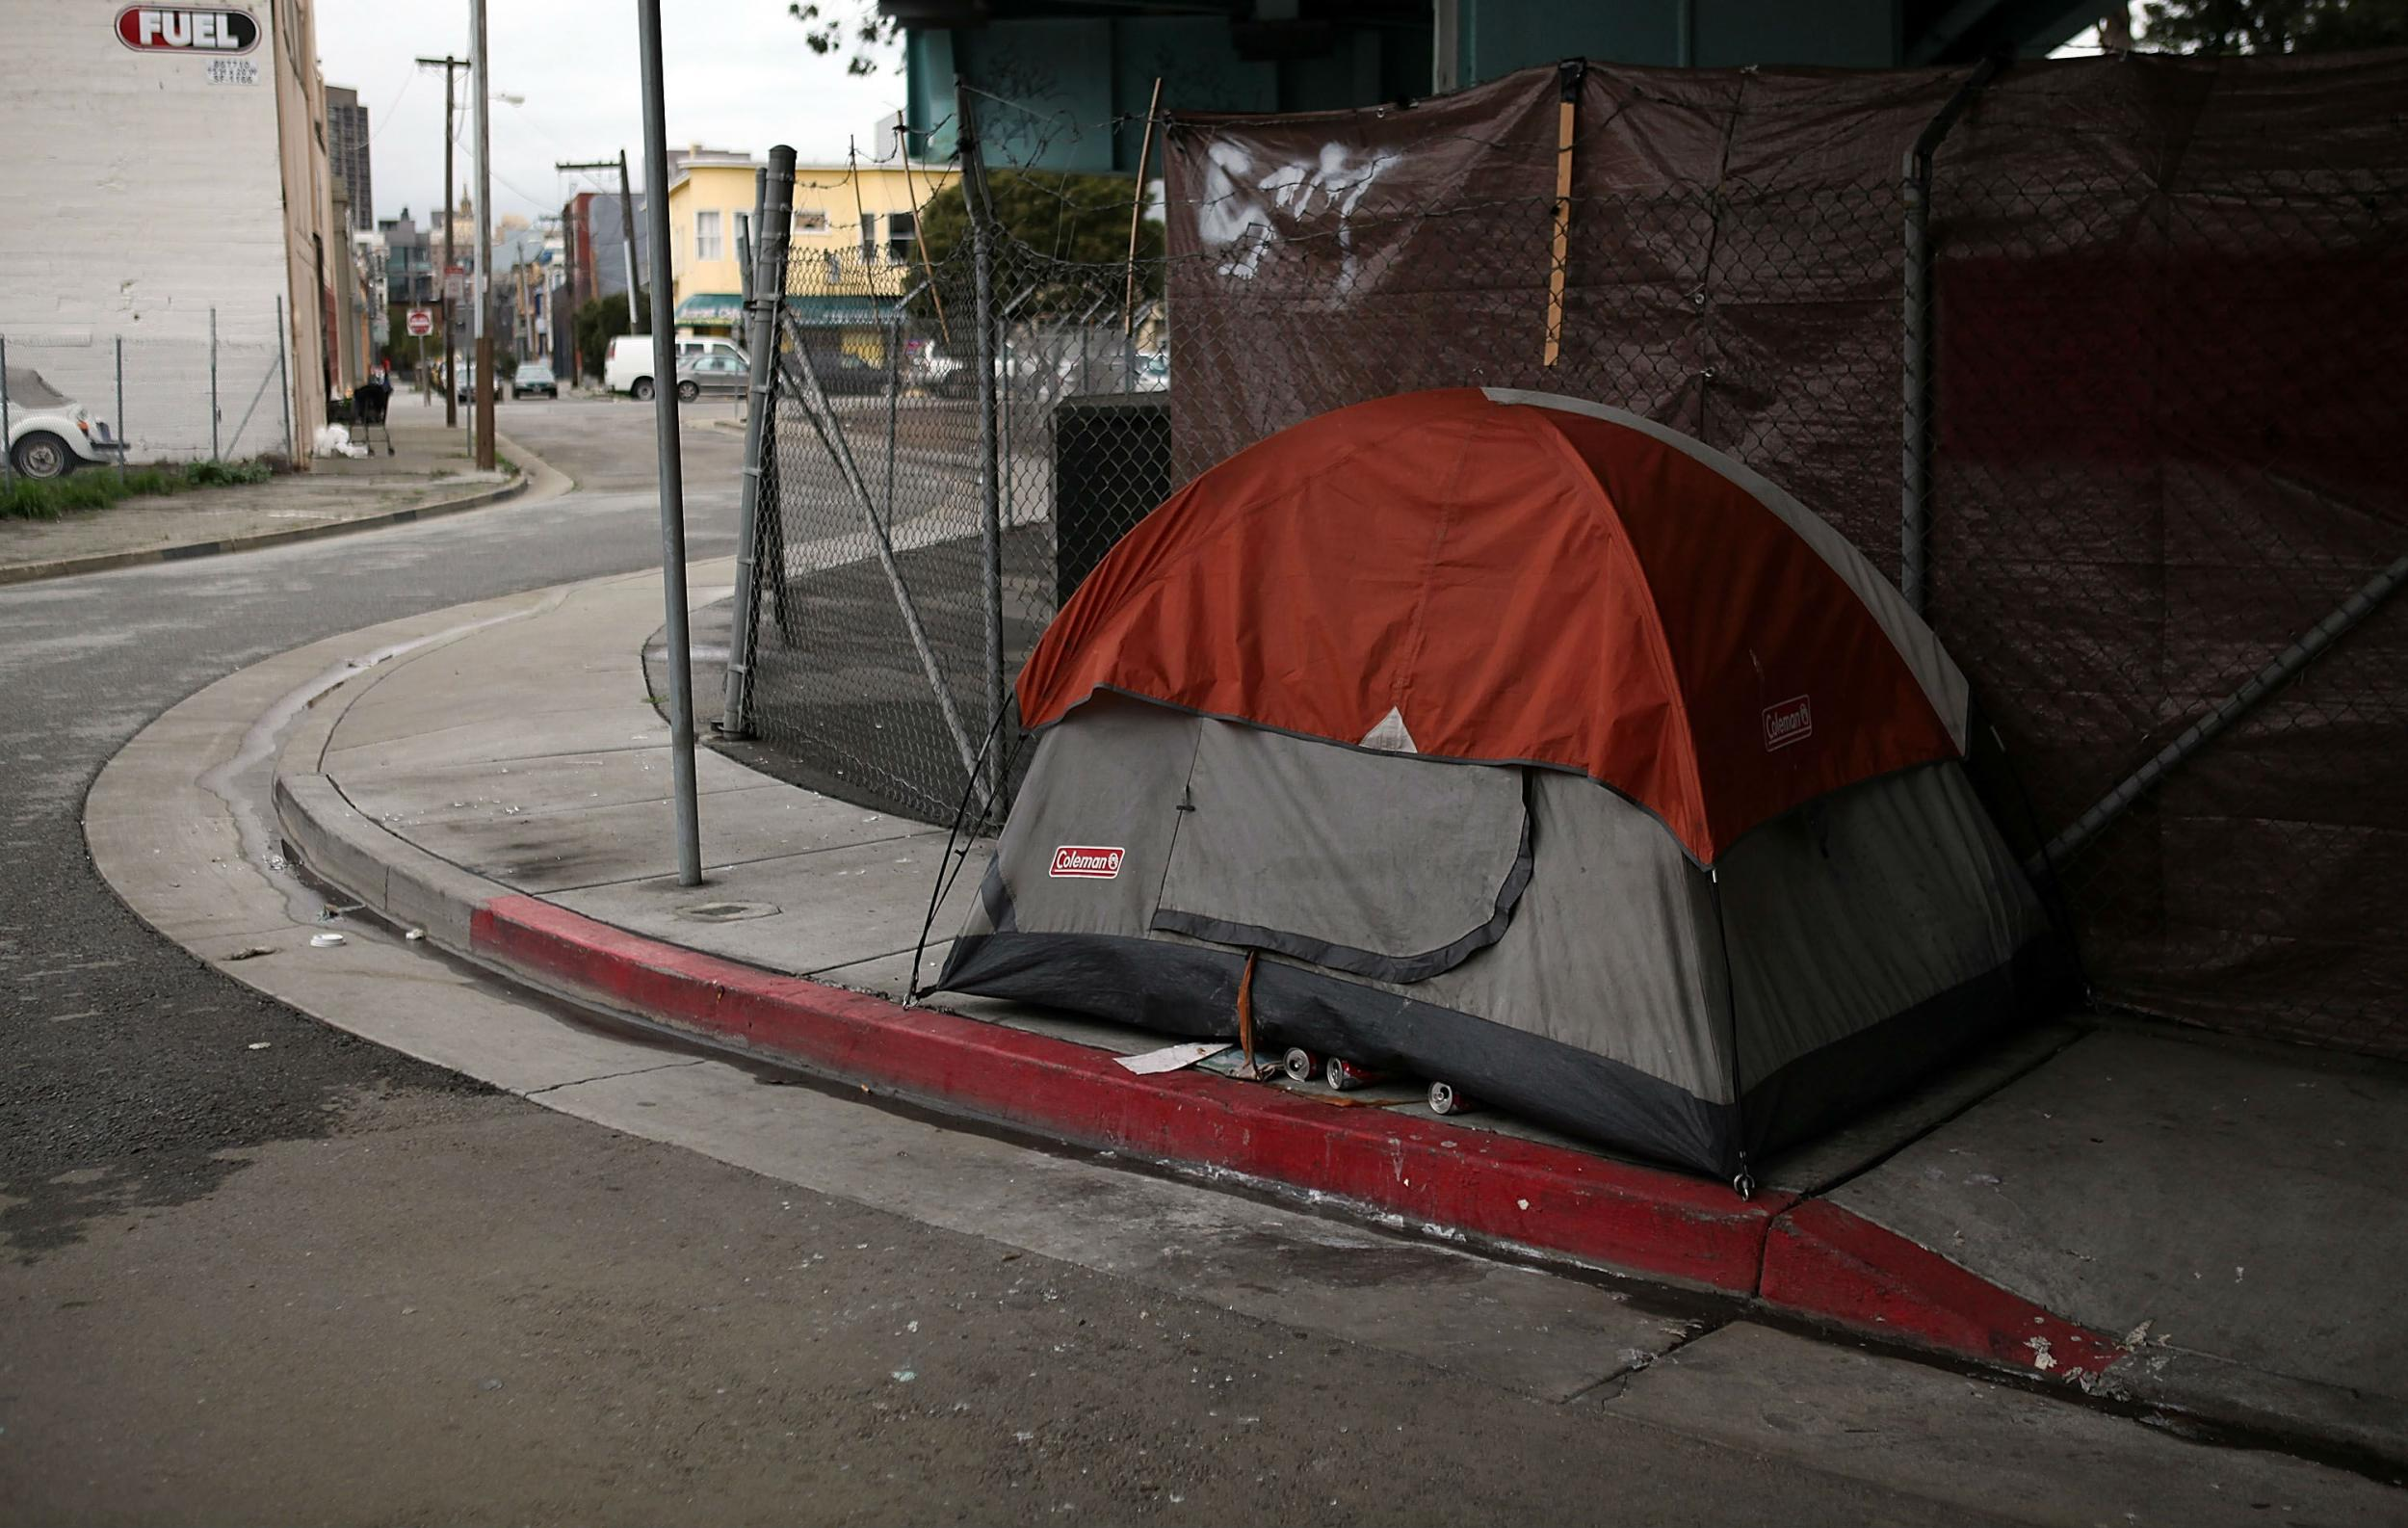 San Francisco homeless crisis sparks bitter debate over the tents lining its streets | The Independent & San Francisco homeless crisis sparks bitter debate over the tents ...